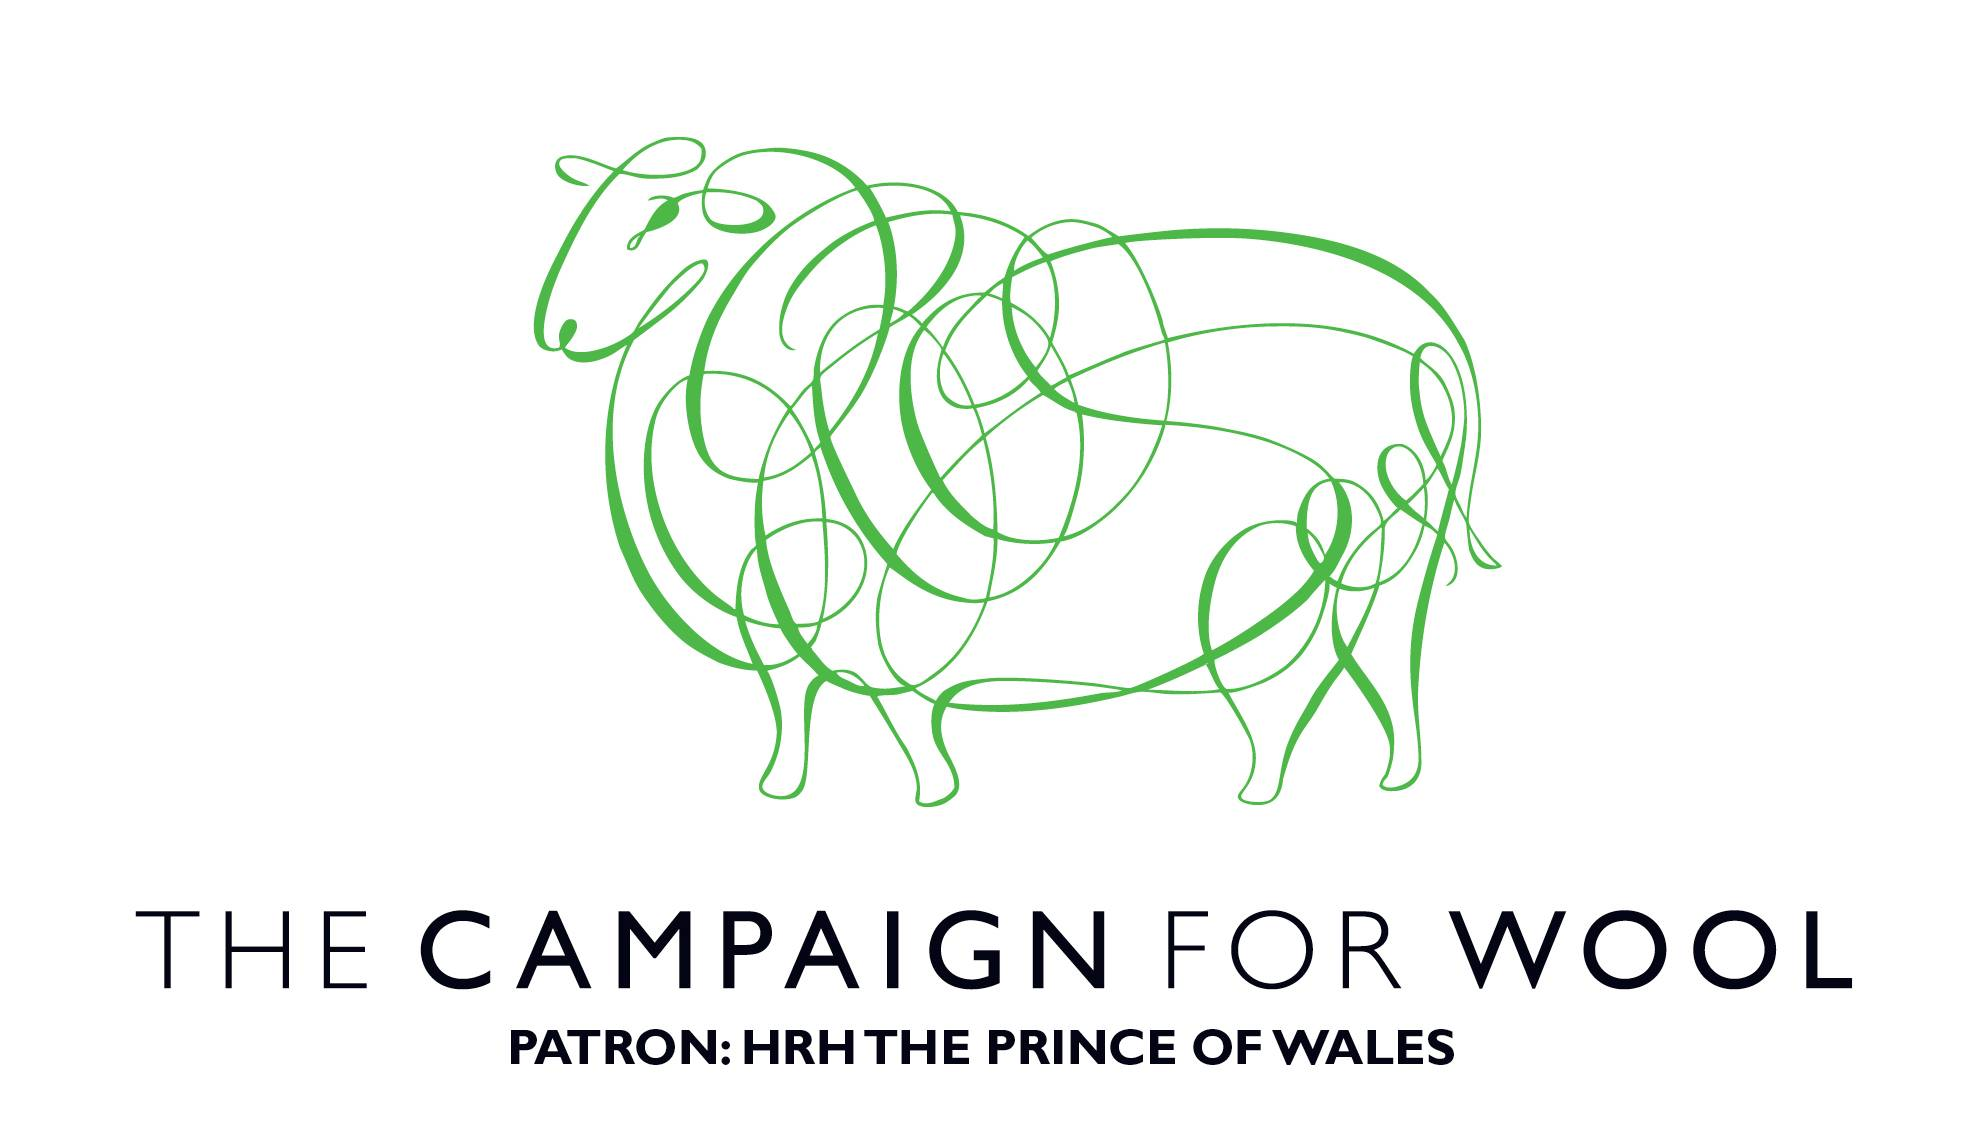 PrinceCharles for Campaign for Wool